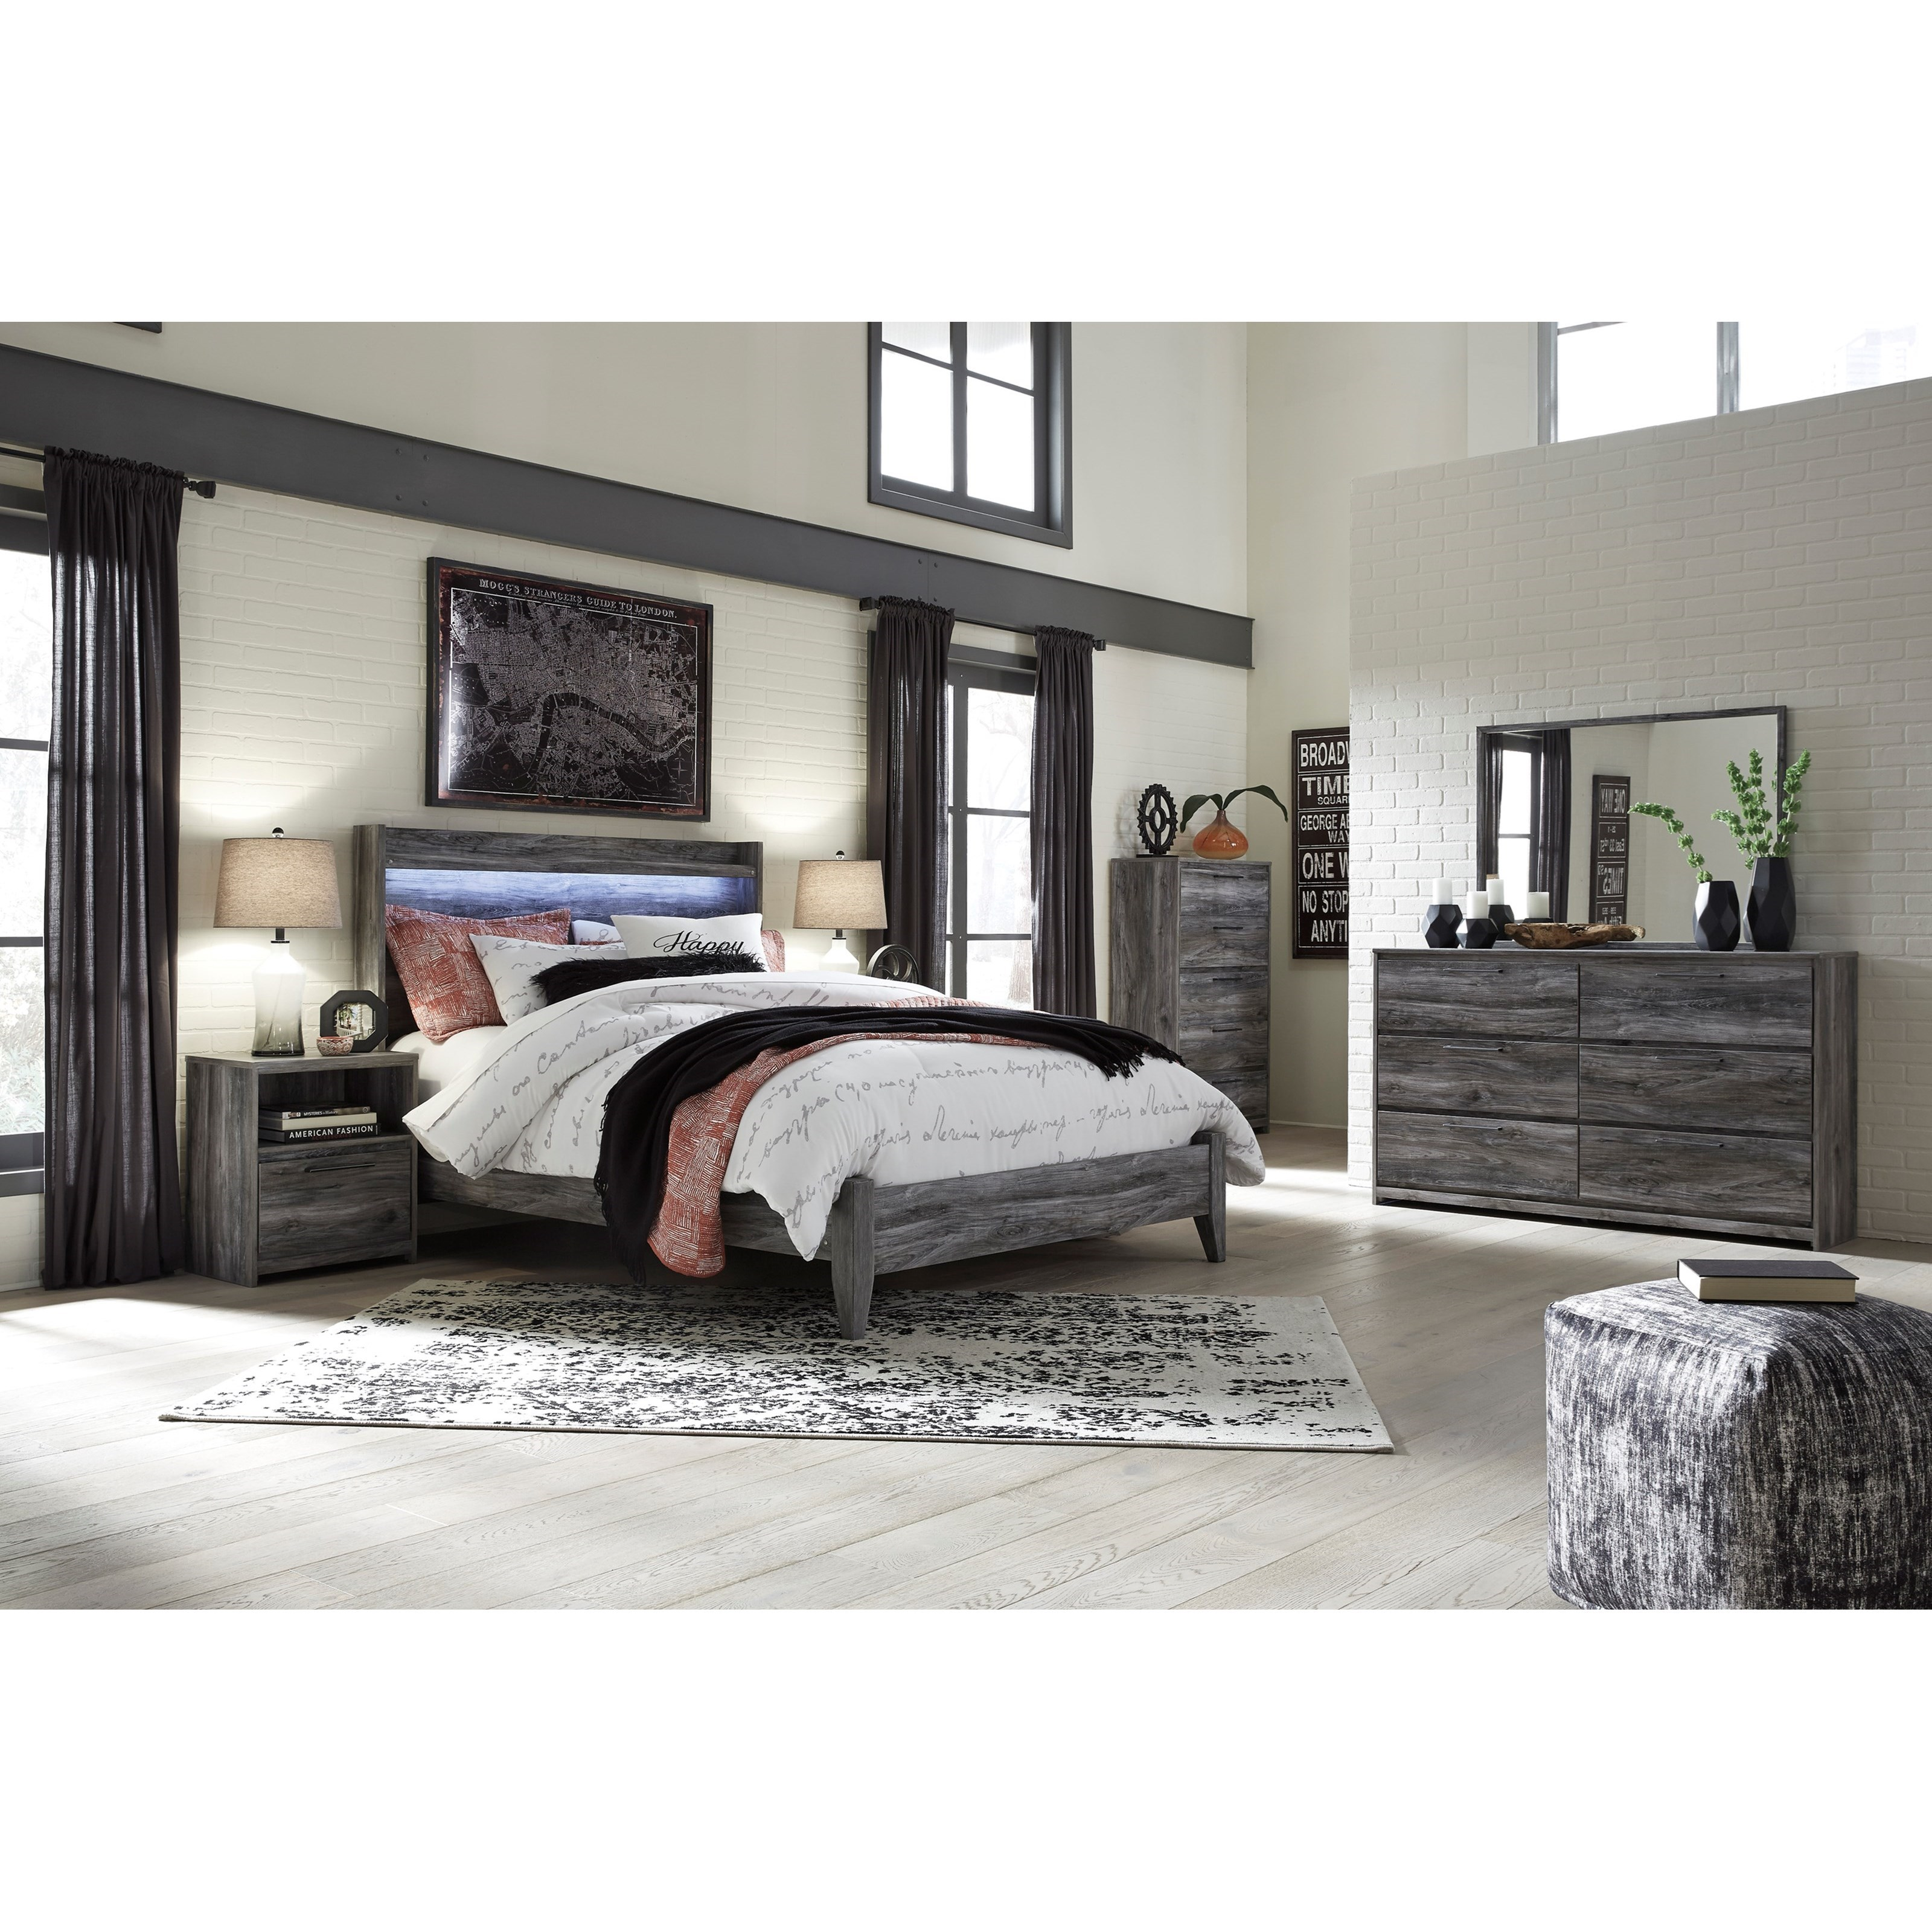 Signature Design By Ashley Baystorm Queen Bedroom Group Del Sol Furniture Bedroom Groups